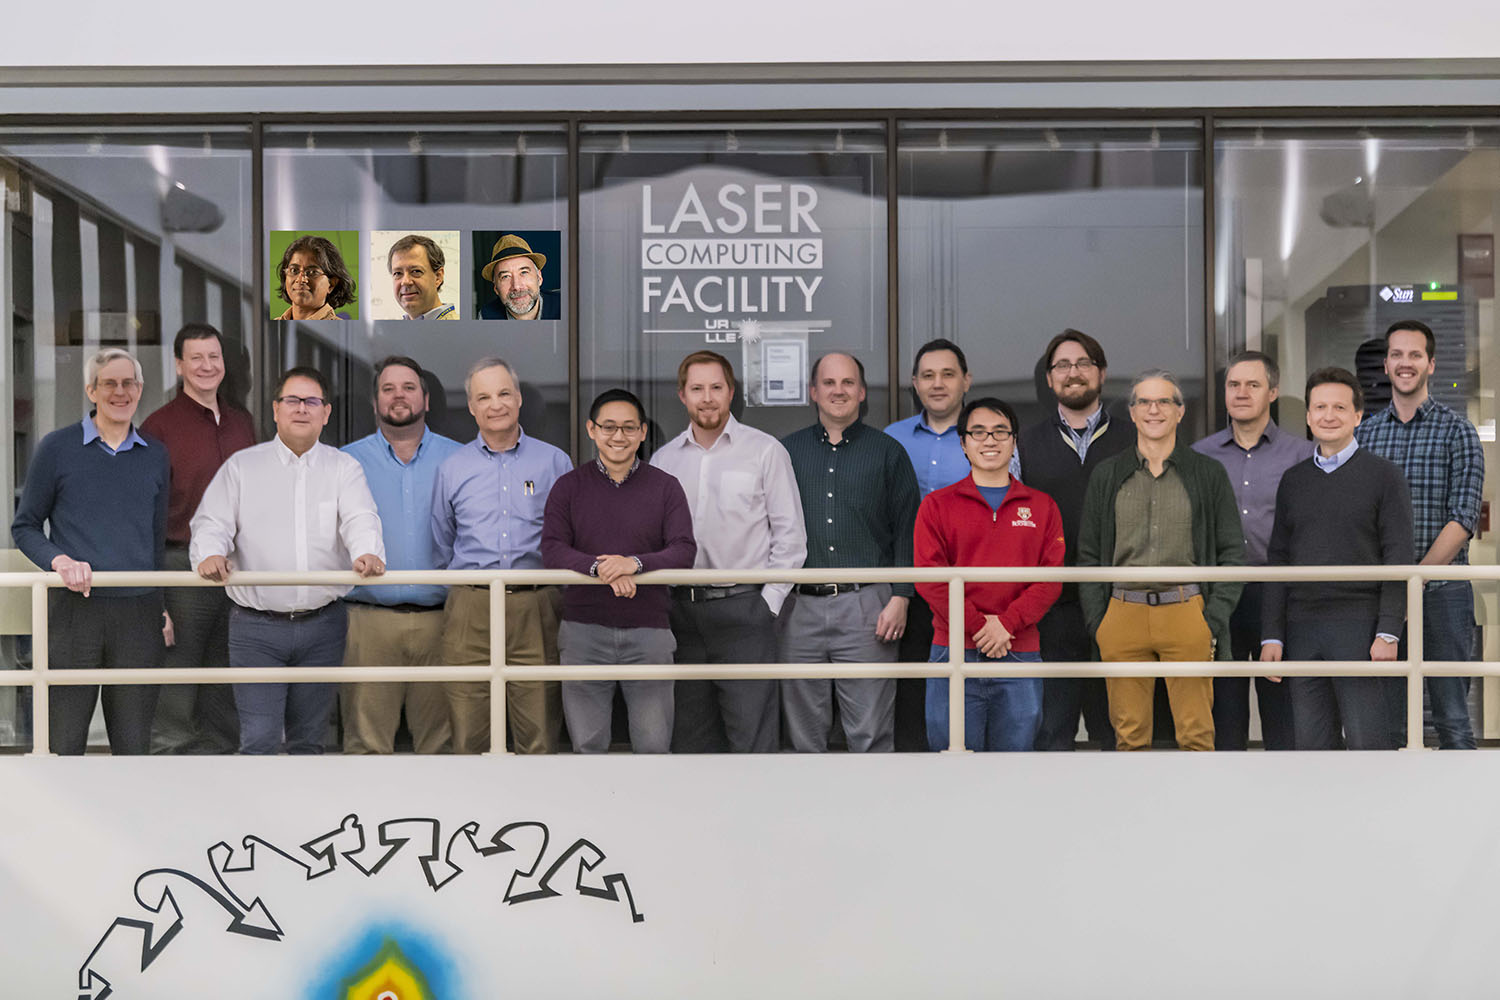 Theory Division group photo in front of the Laser Computing Facility